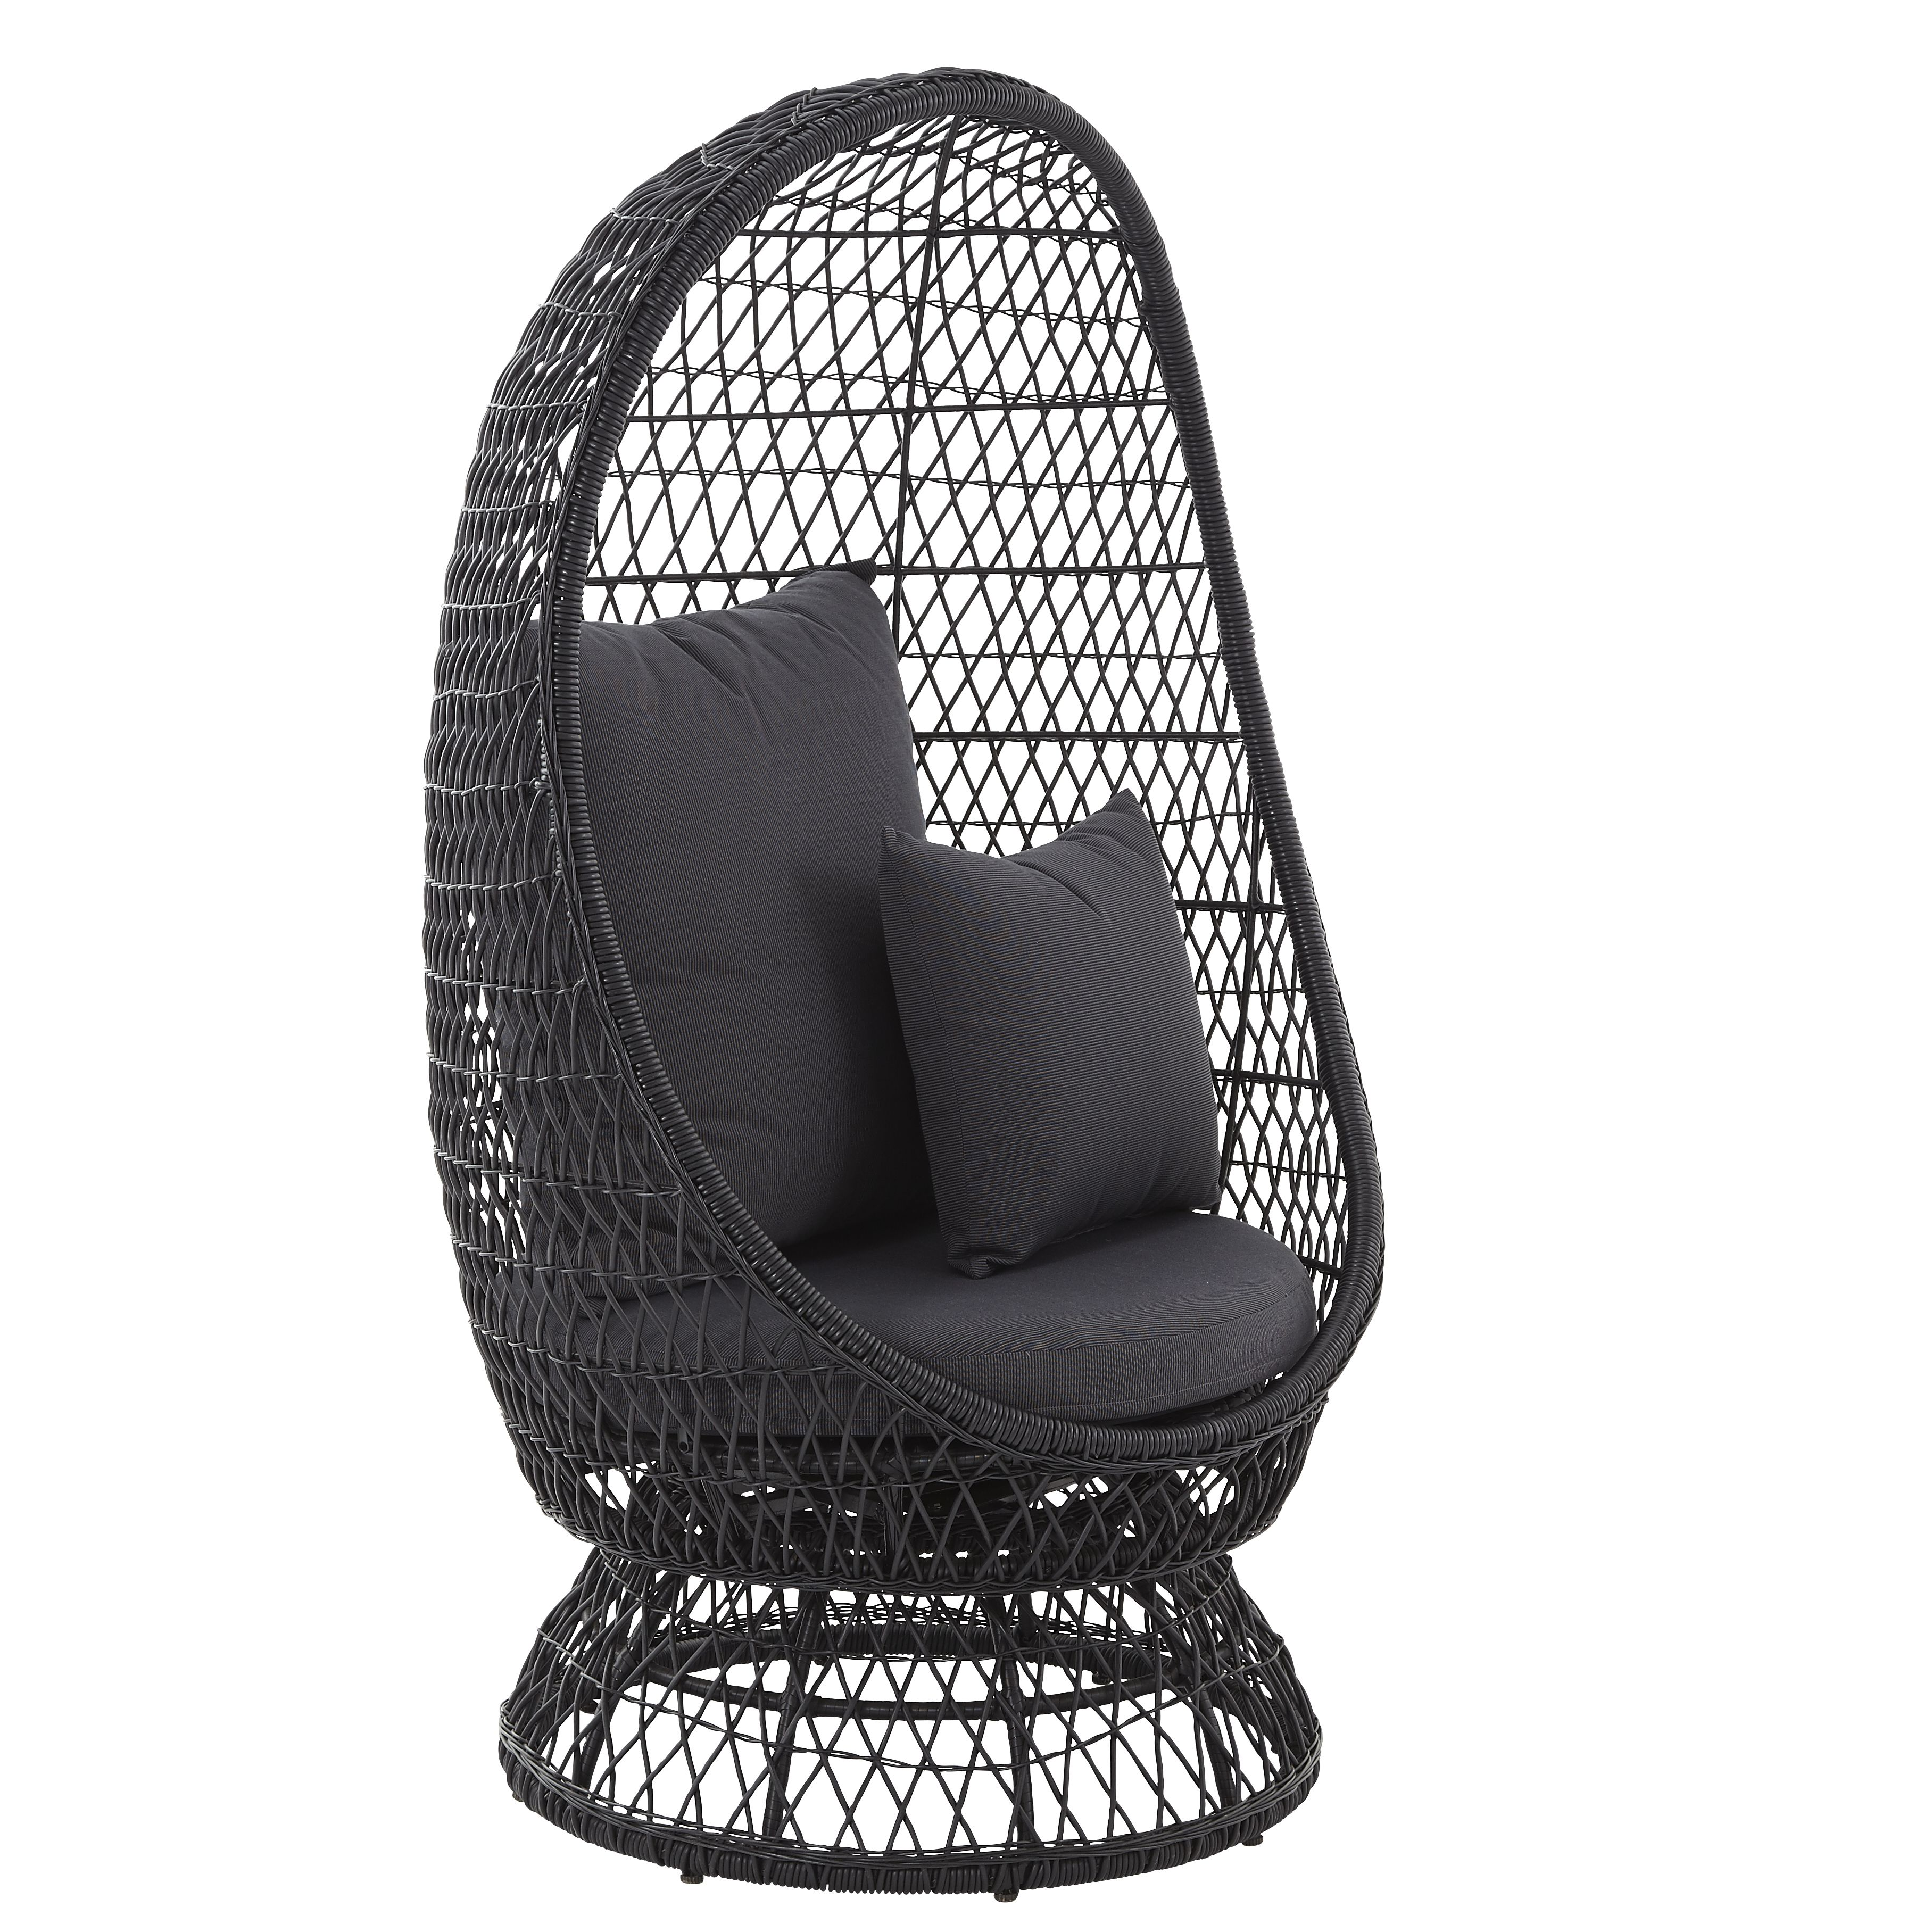 anya rattan effect egg chair departments diy at b q. Black Bedroom Furniture Sets. Home Design Ideas